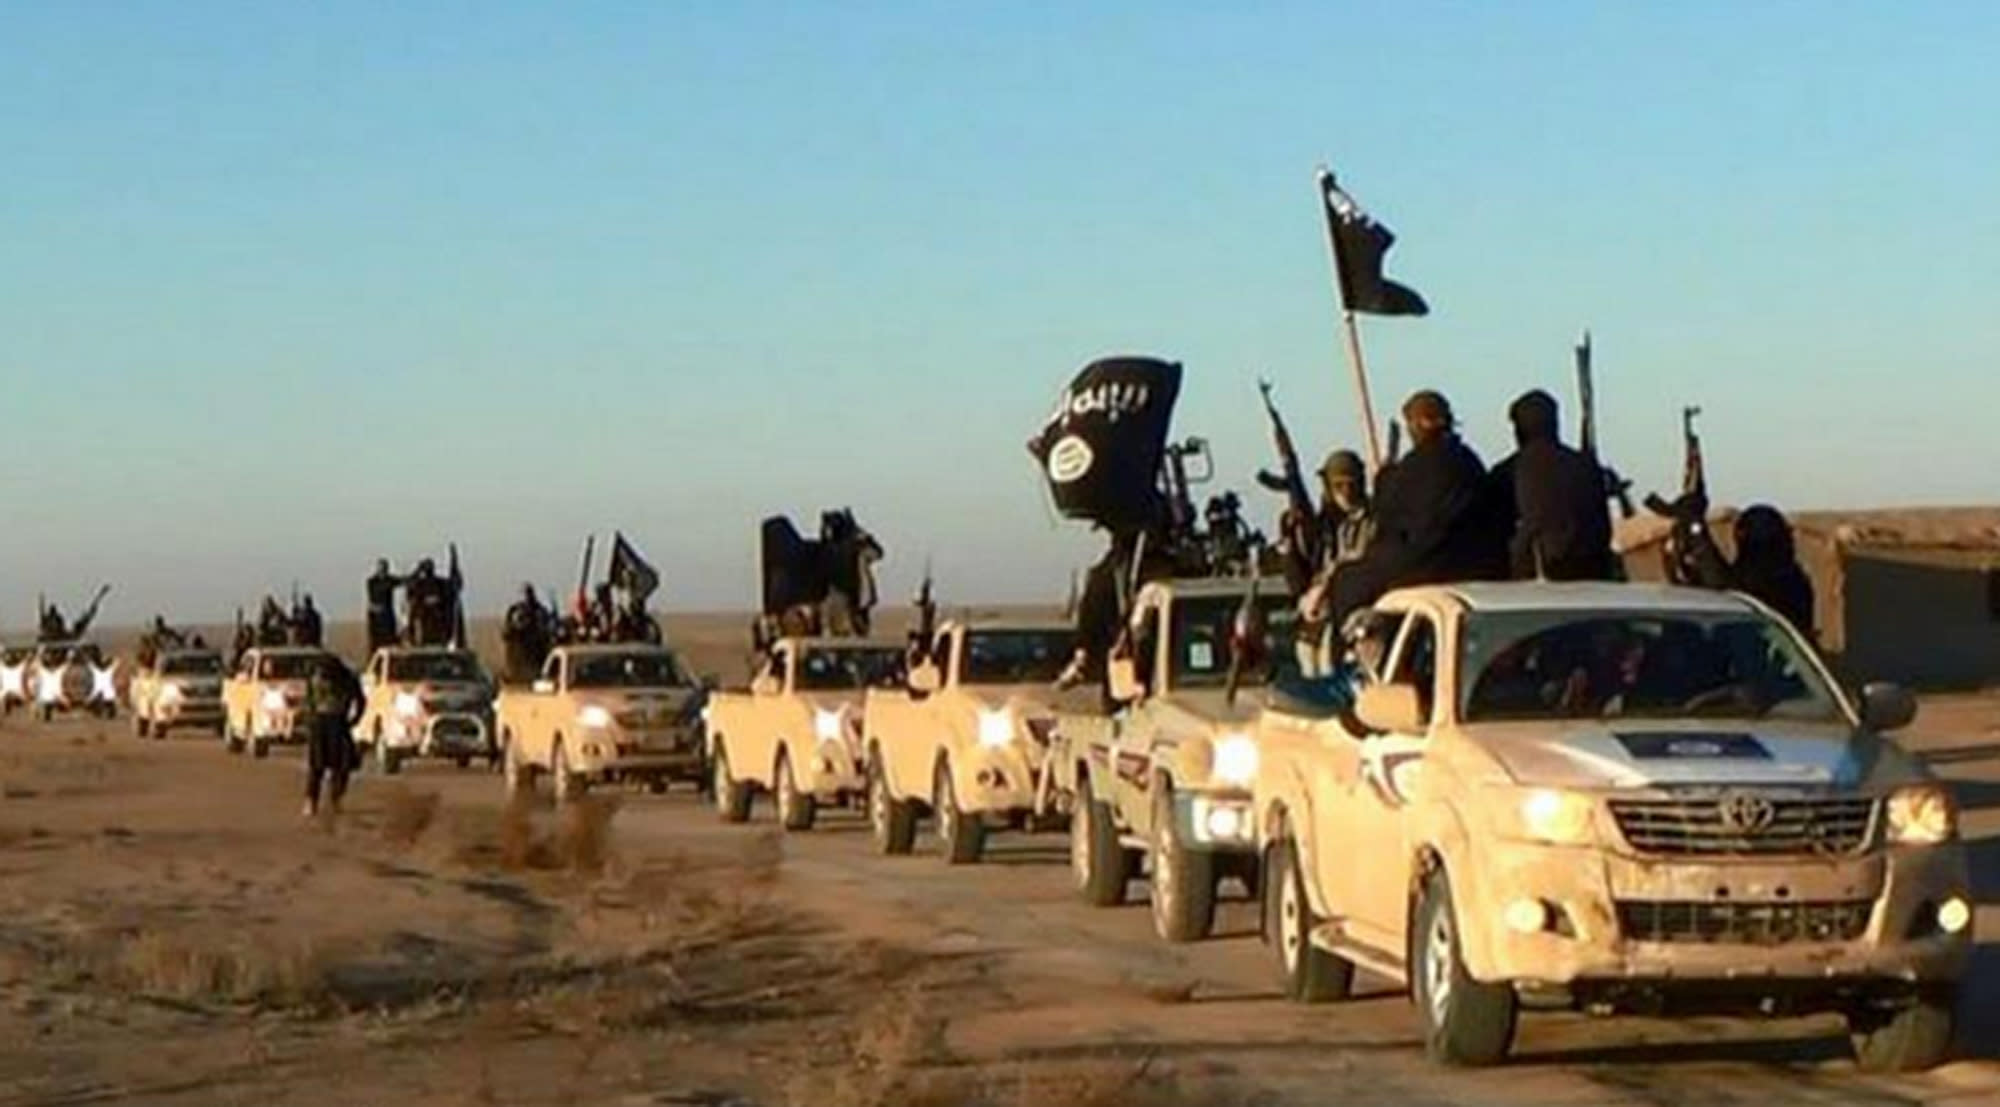 Why do extremists drive Toyotas?, asks US